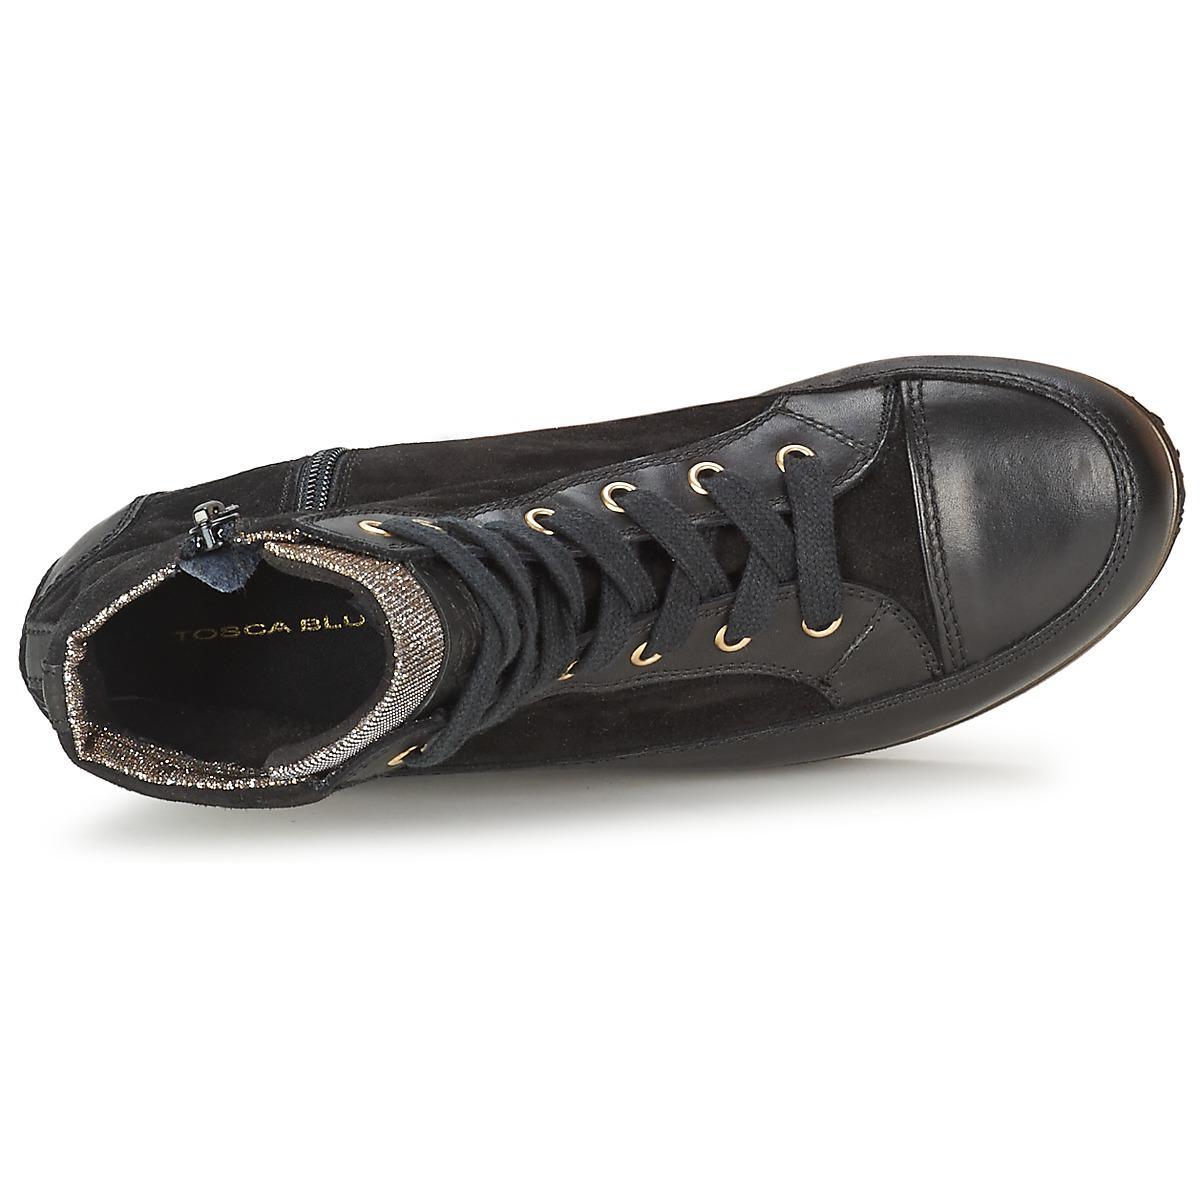 Tosca Blu Leather Bangkok Women's Shoes (high-top Trainers) In Black